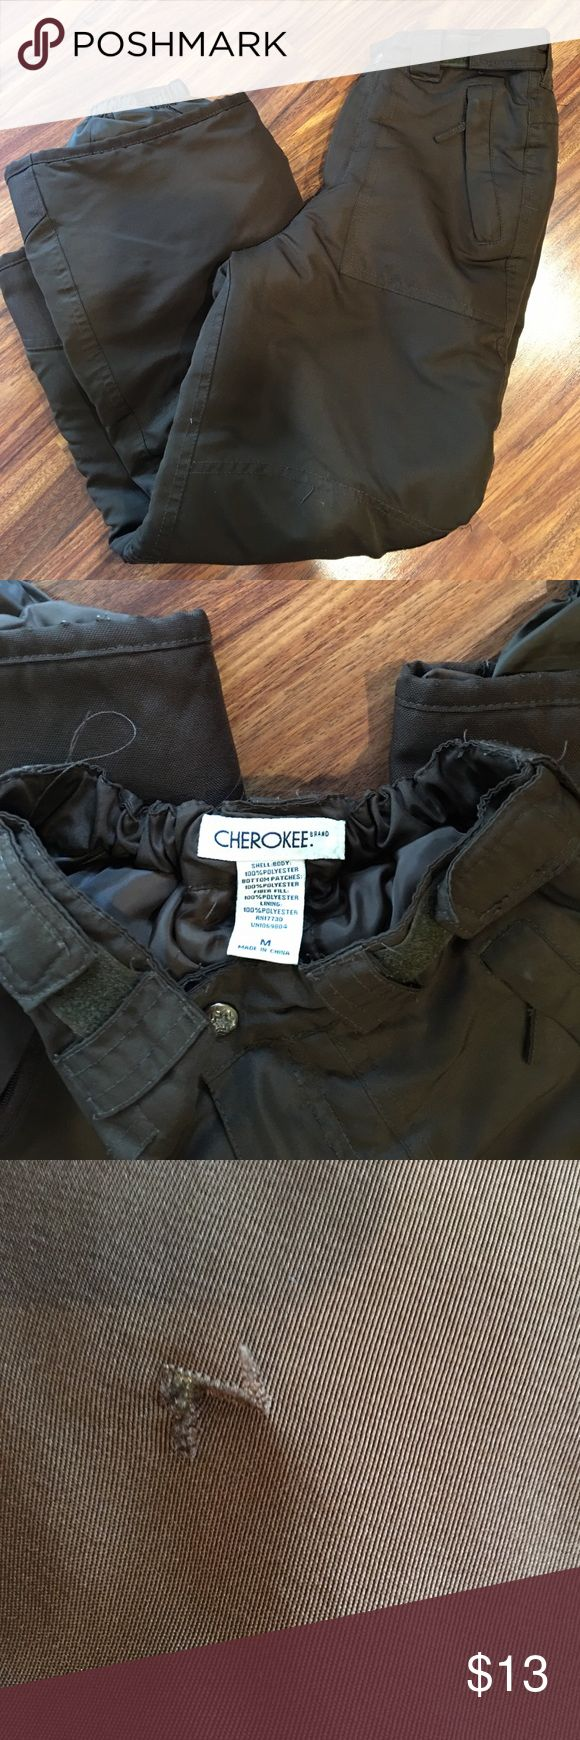 Cherokee girls ski snowboard pants medium M Brown in color. Great condition except for a small tear in the outer fabric from Skiing. See picture.Girls medium (fits about ages 10-12). #4/27/17. Cherokee Bottoms